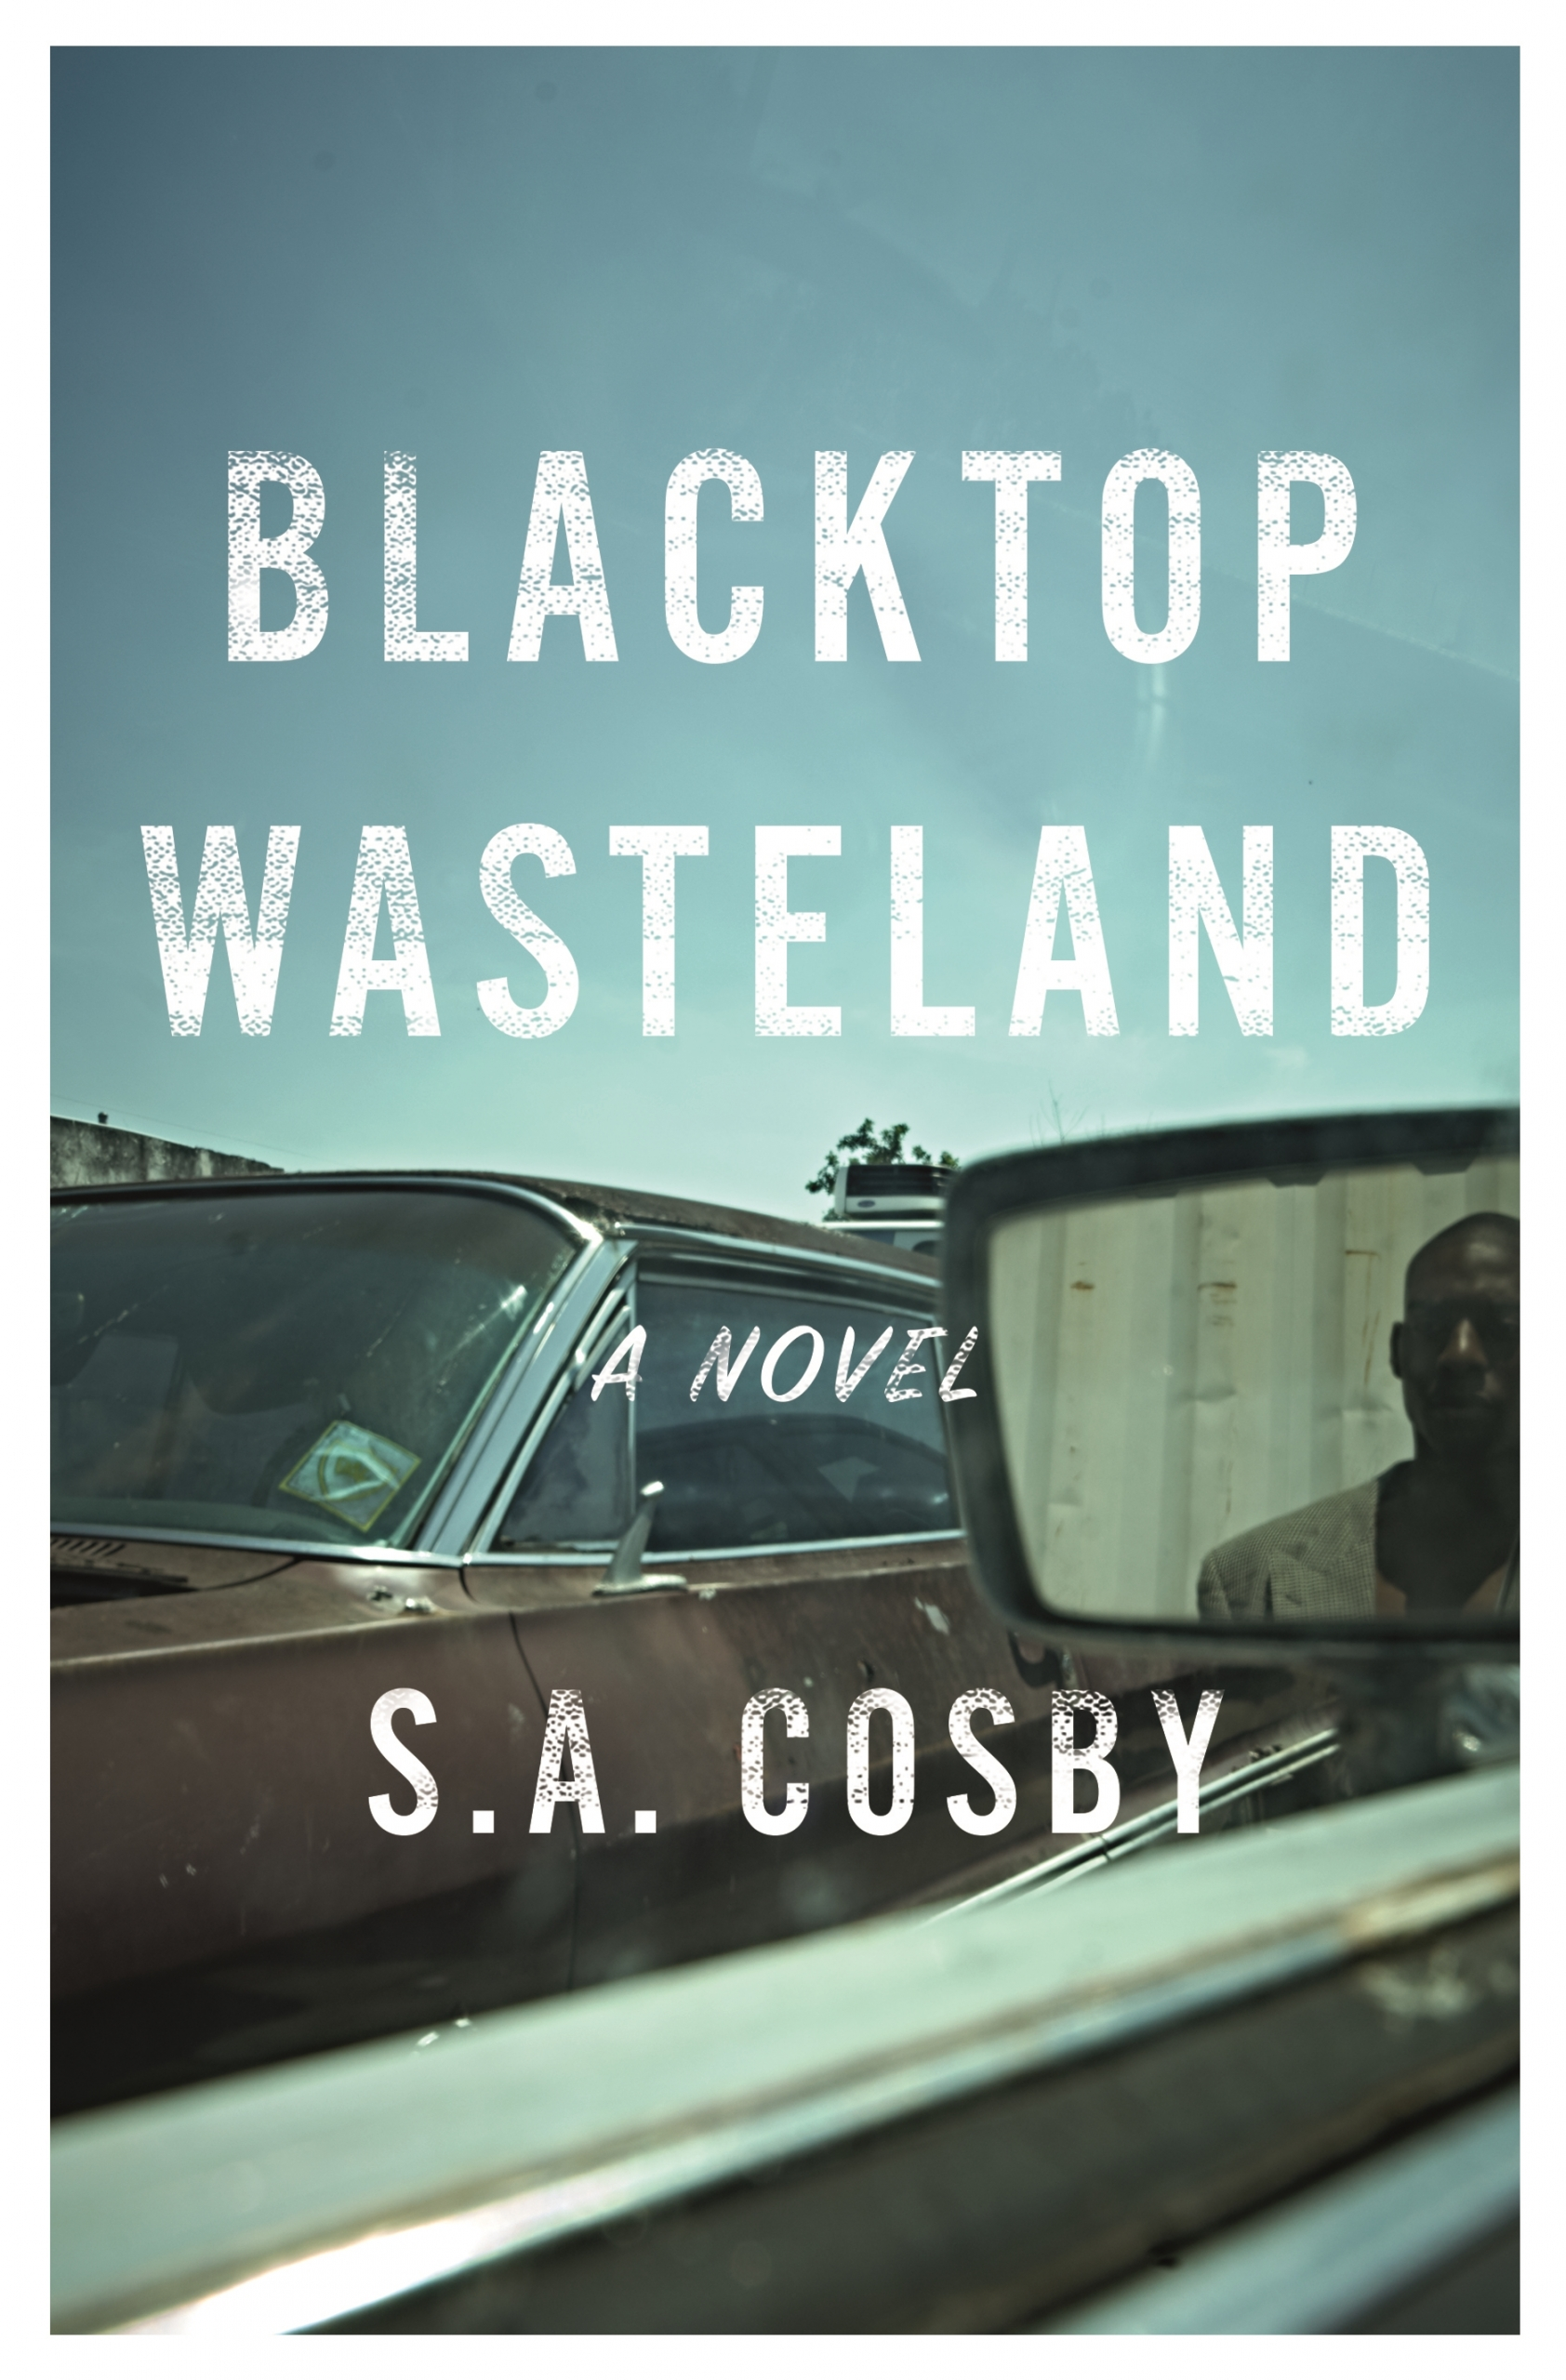 Blacktop Wasteland by S.A. Cosby